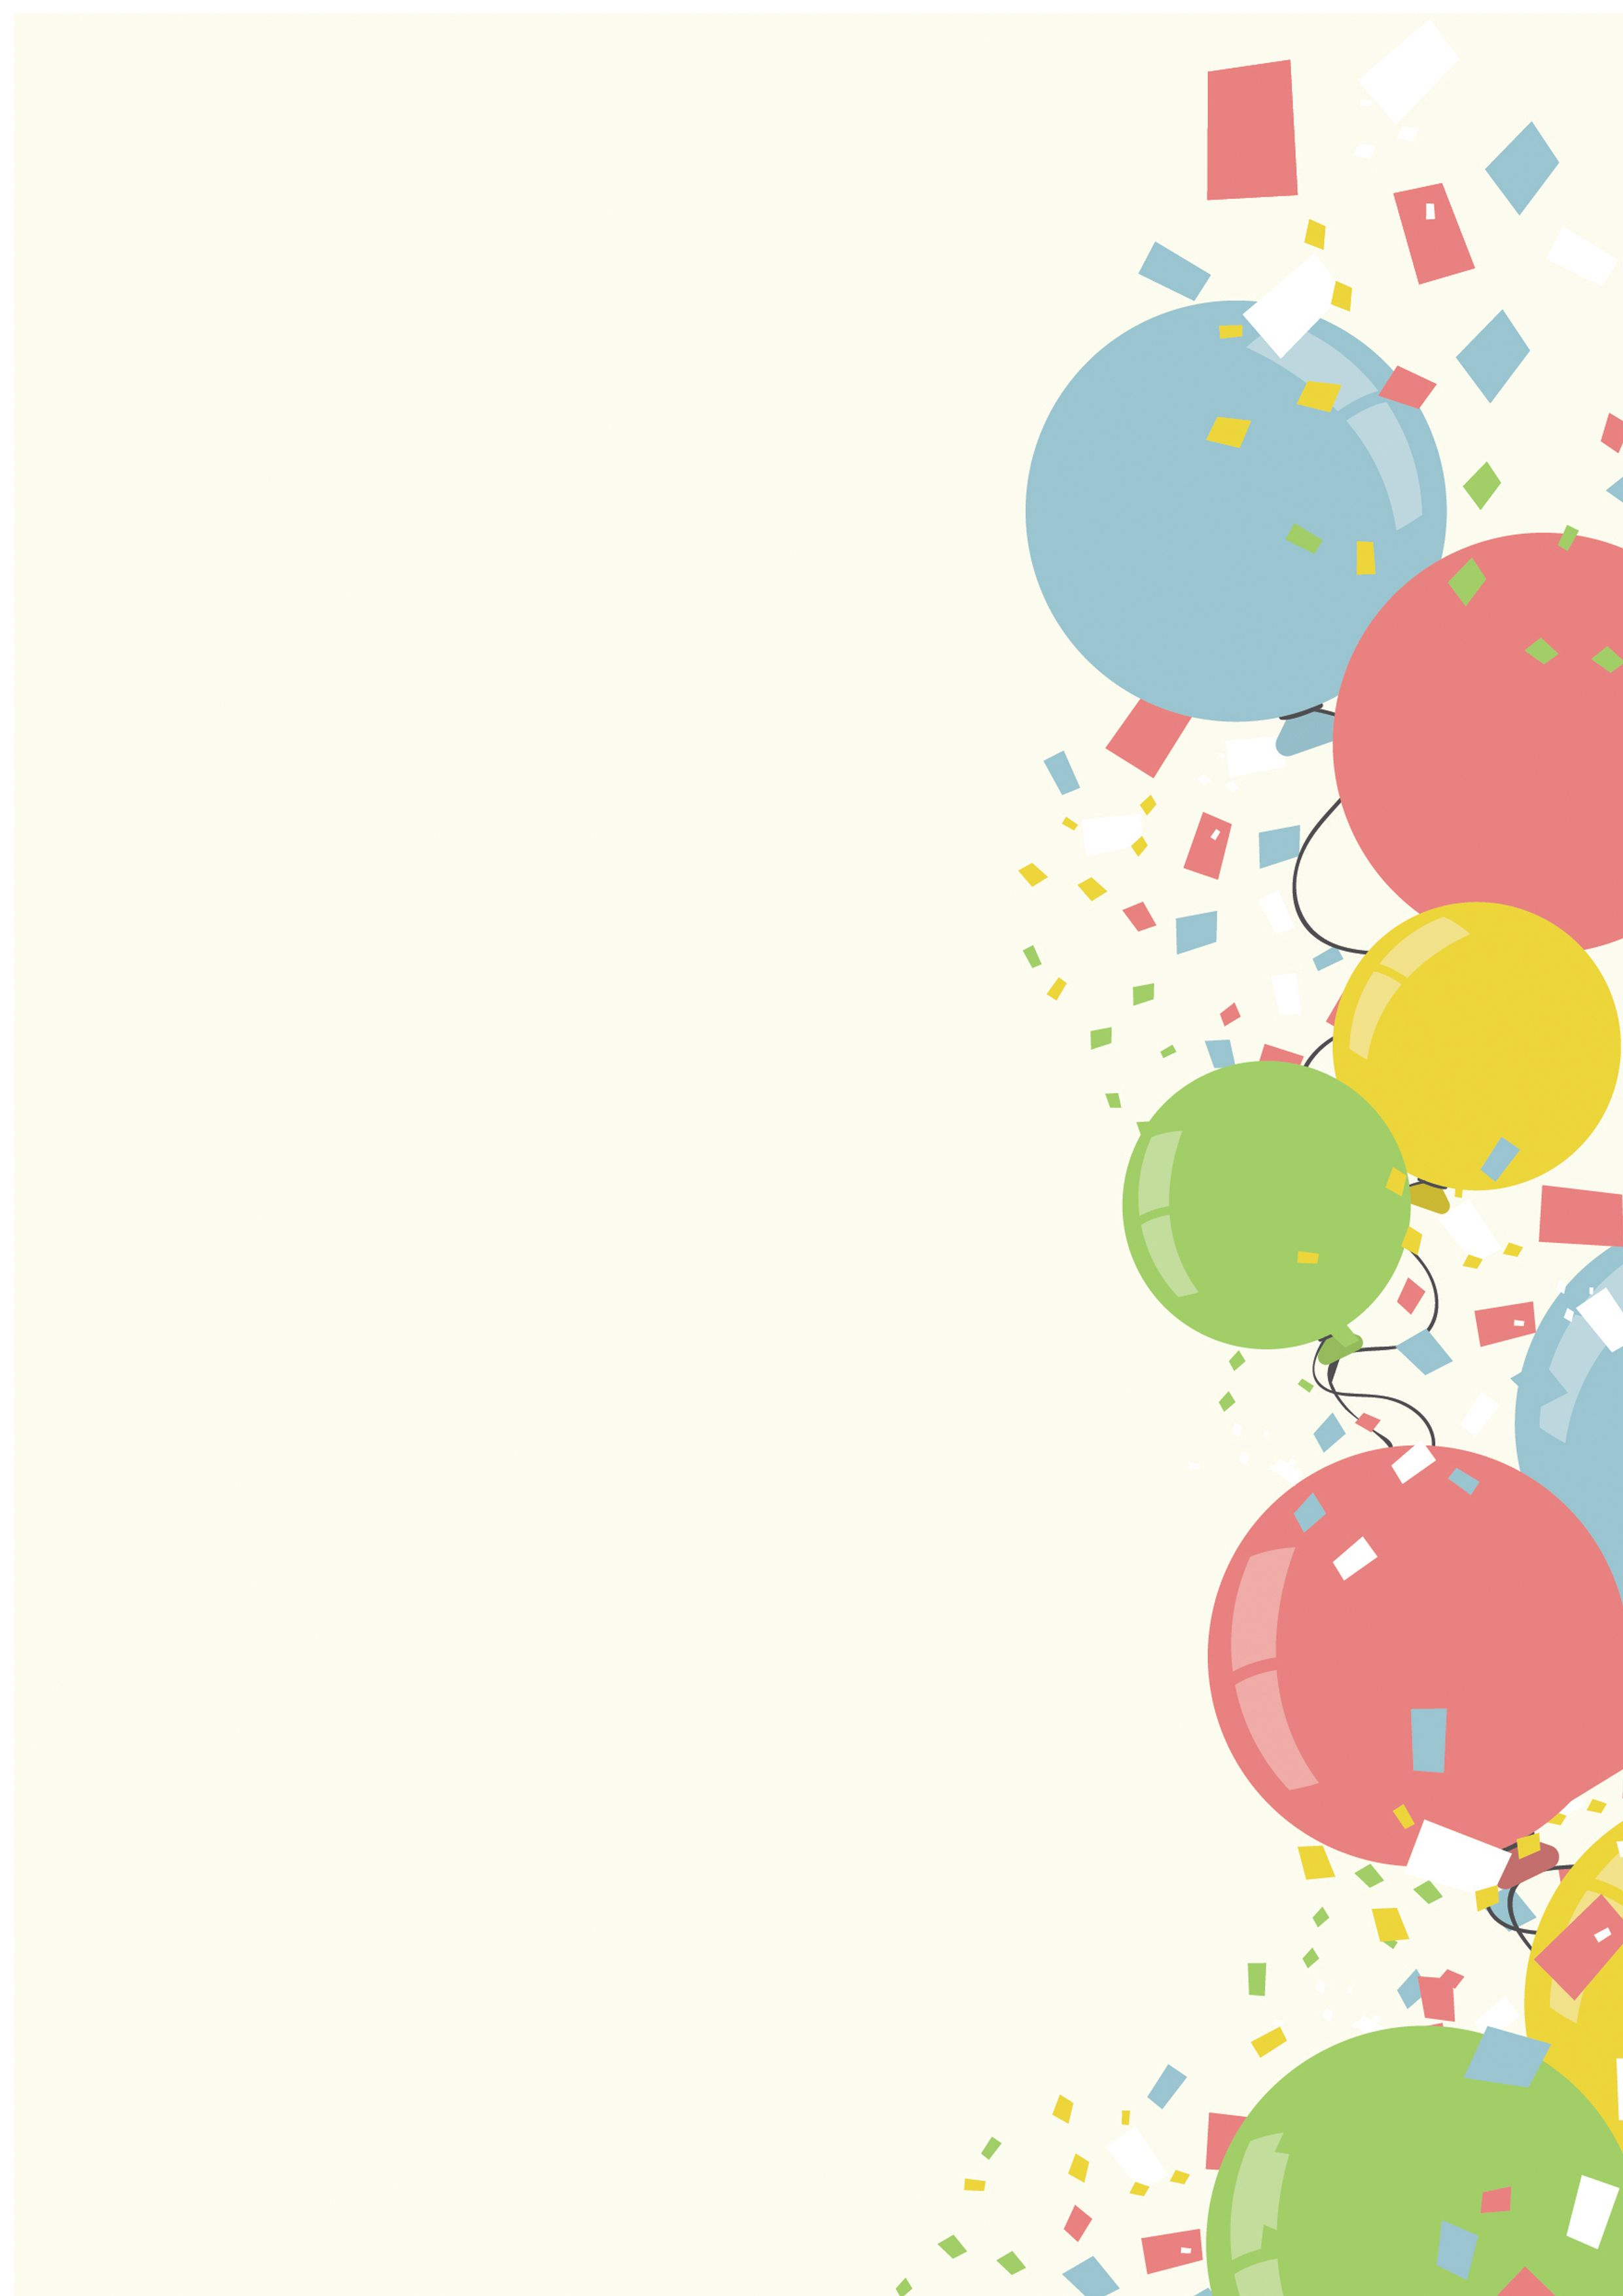 Confetti Cartoon Design Colorful Background Newspaper Collage Colorful Backgrounds Happy Birthday Wallpaper